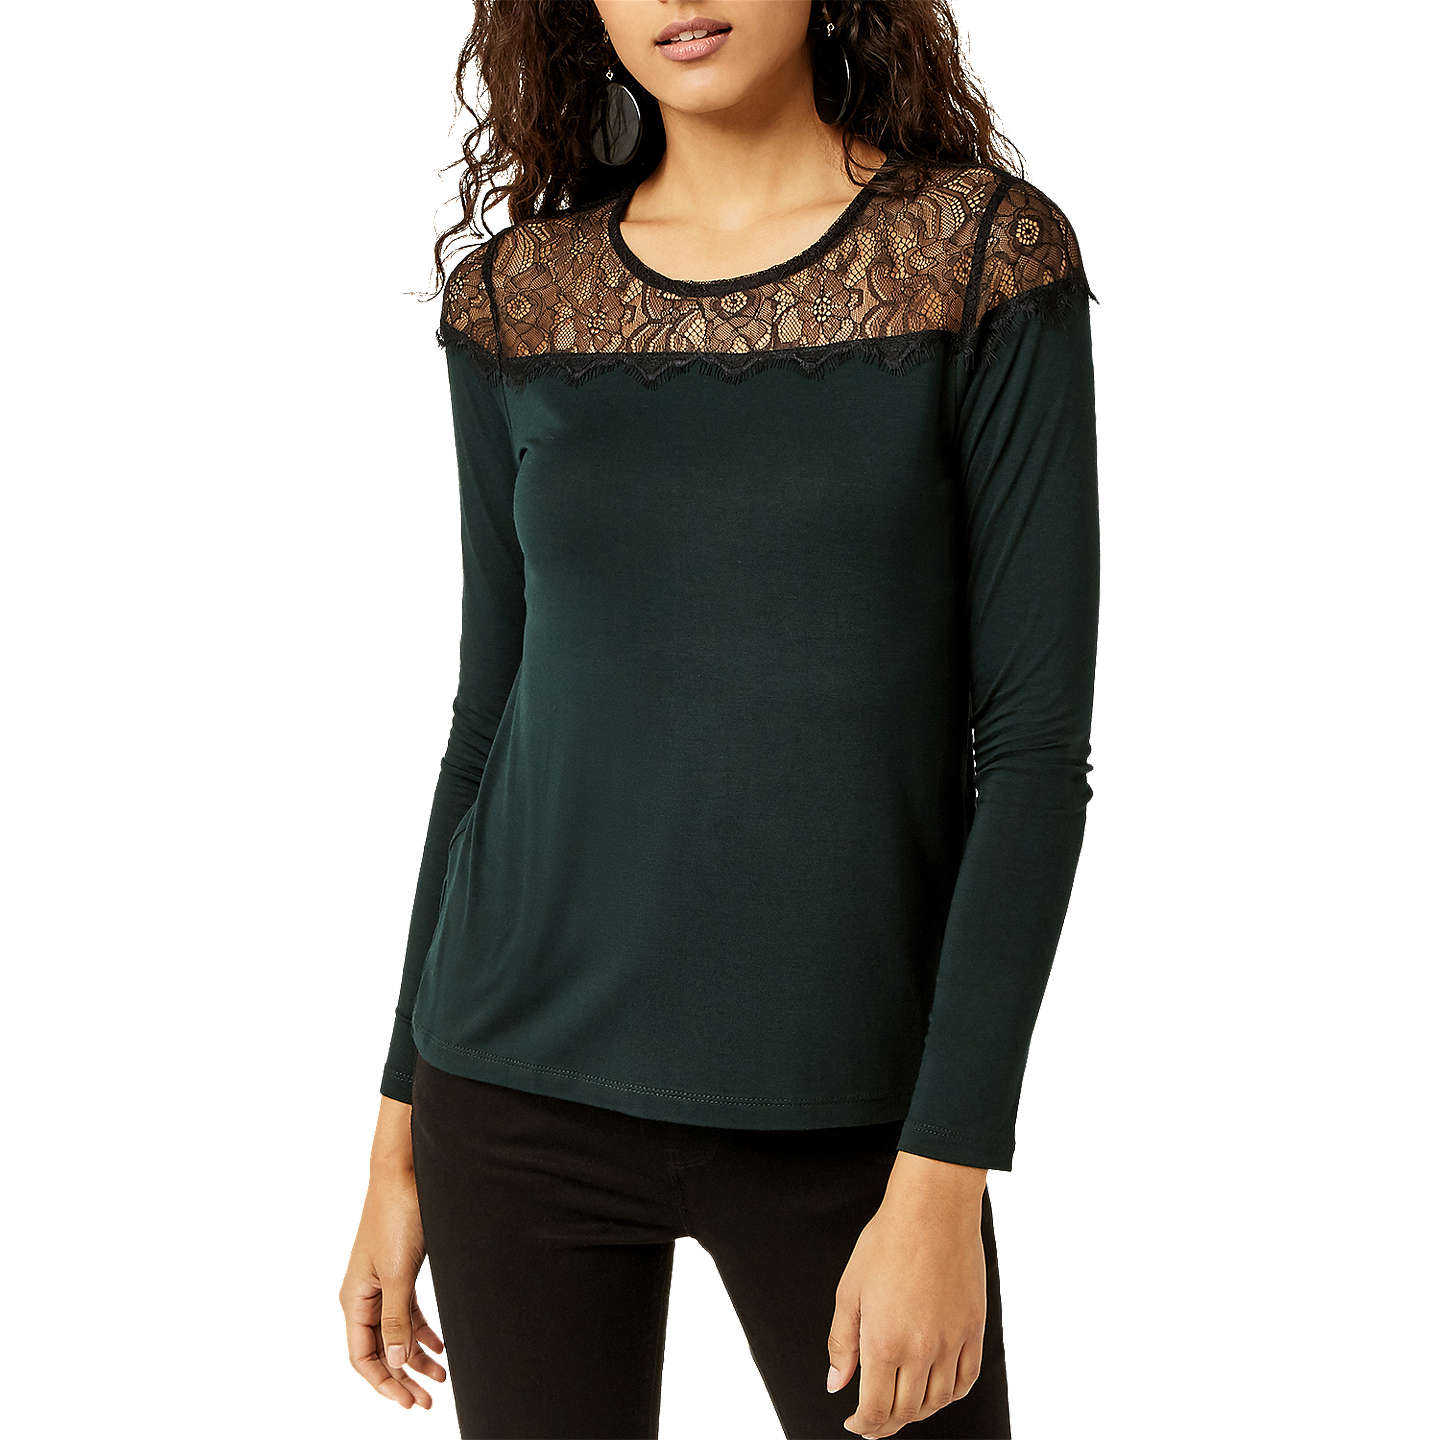 BuyWarehouse Lace Panel Jersey Top, Dark Green, 6 Online at johnlewis.com